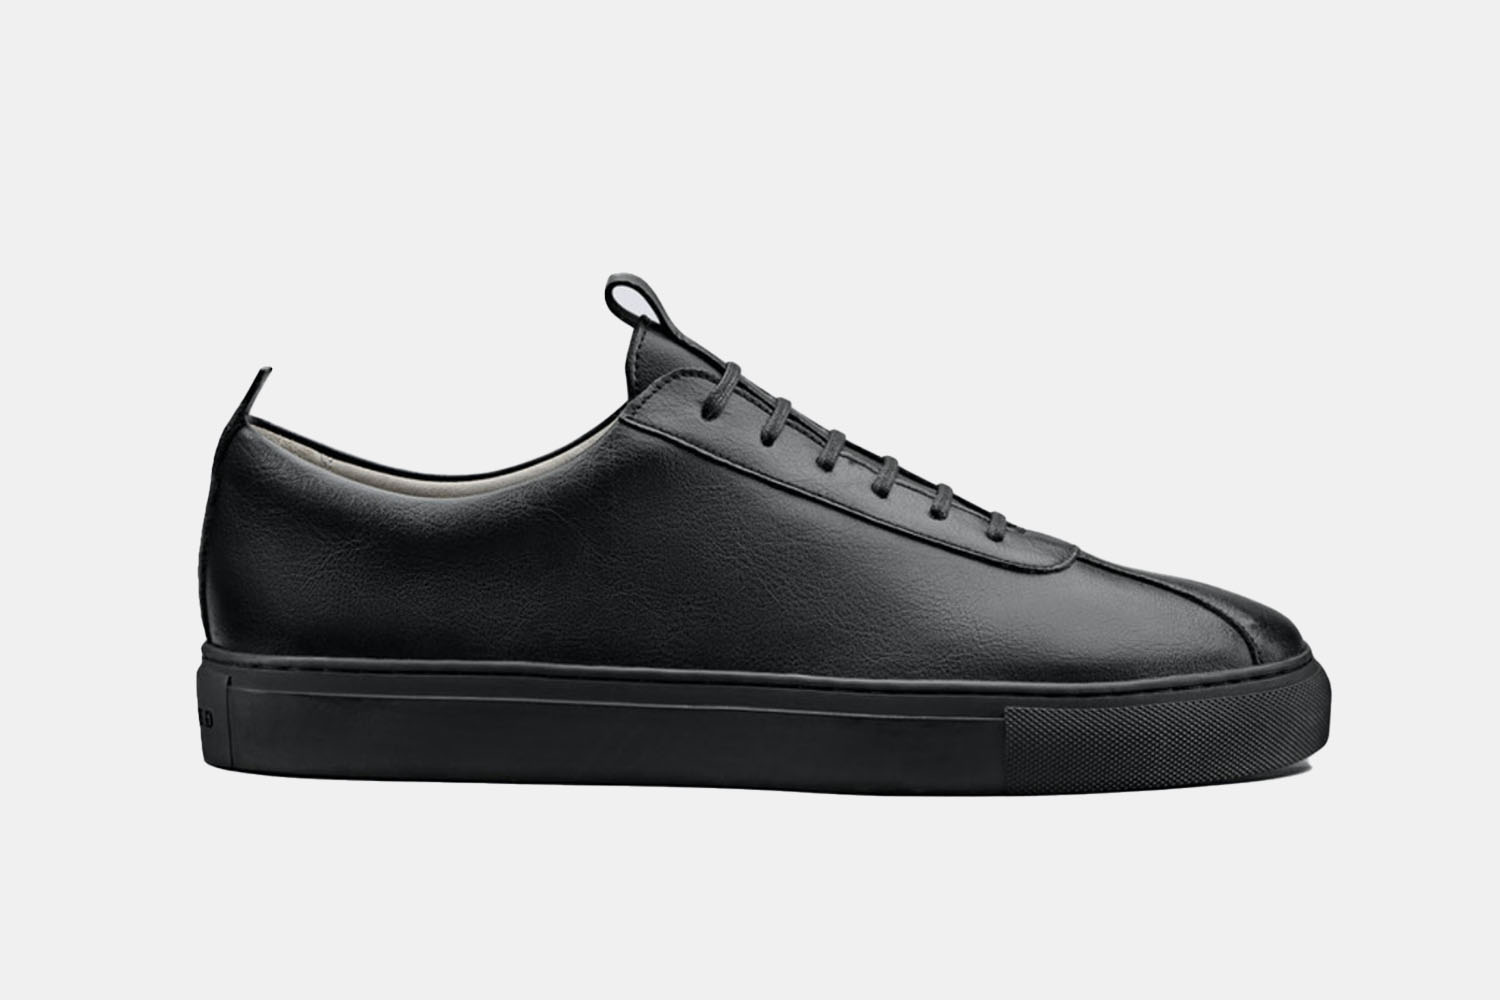 An all black leather sneaker.